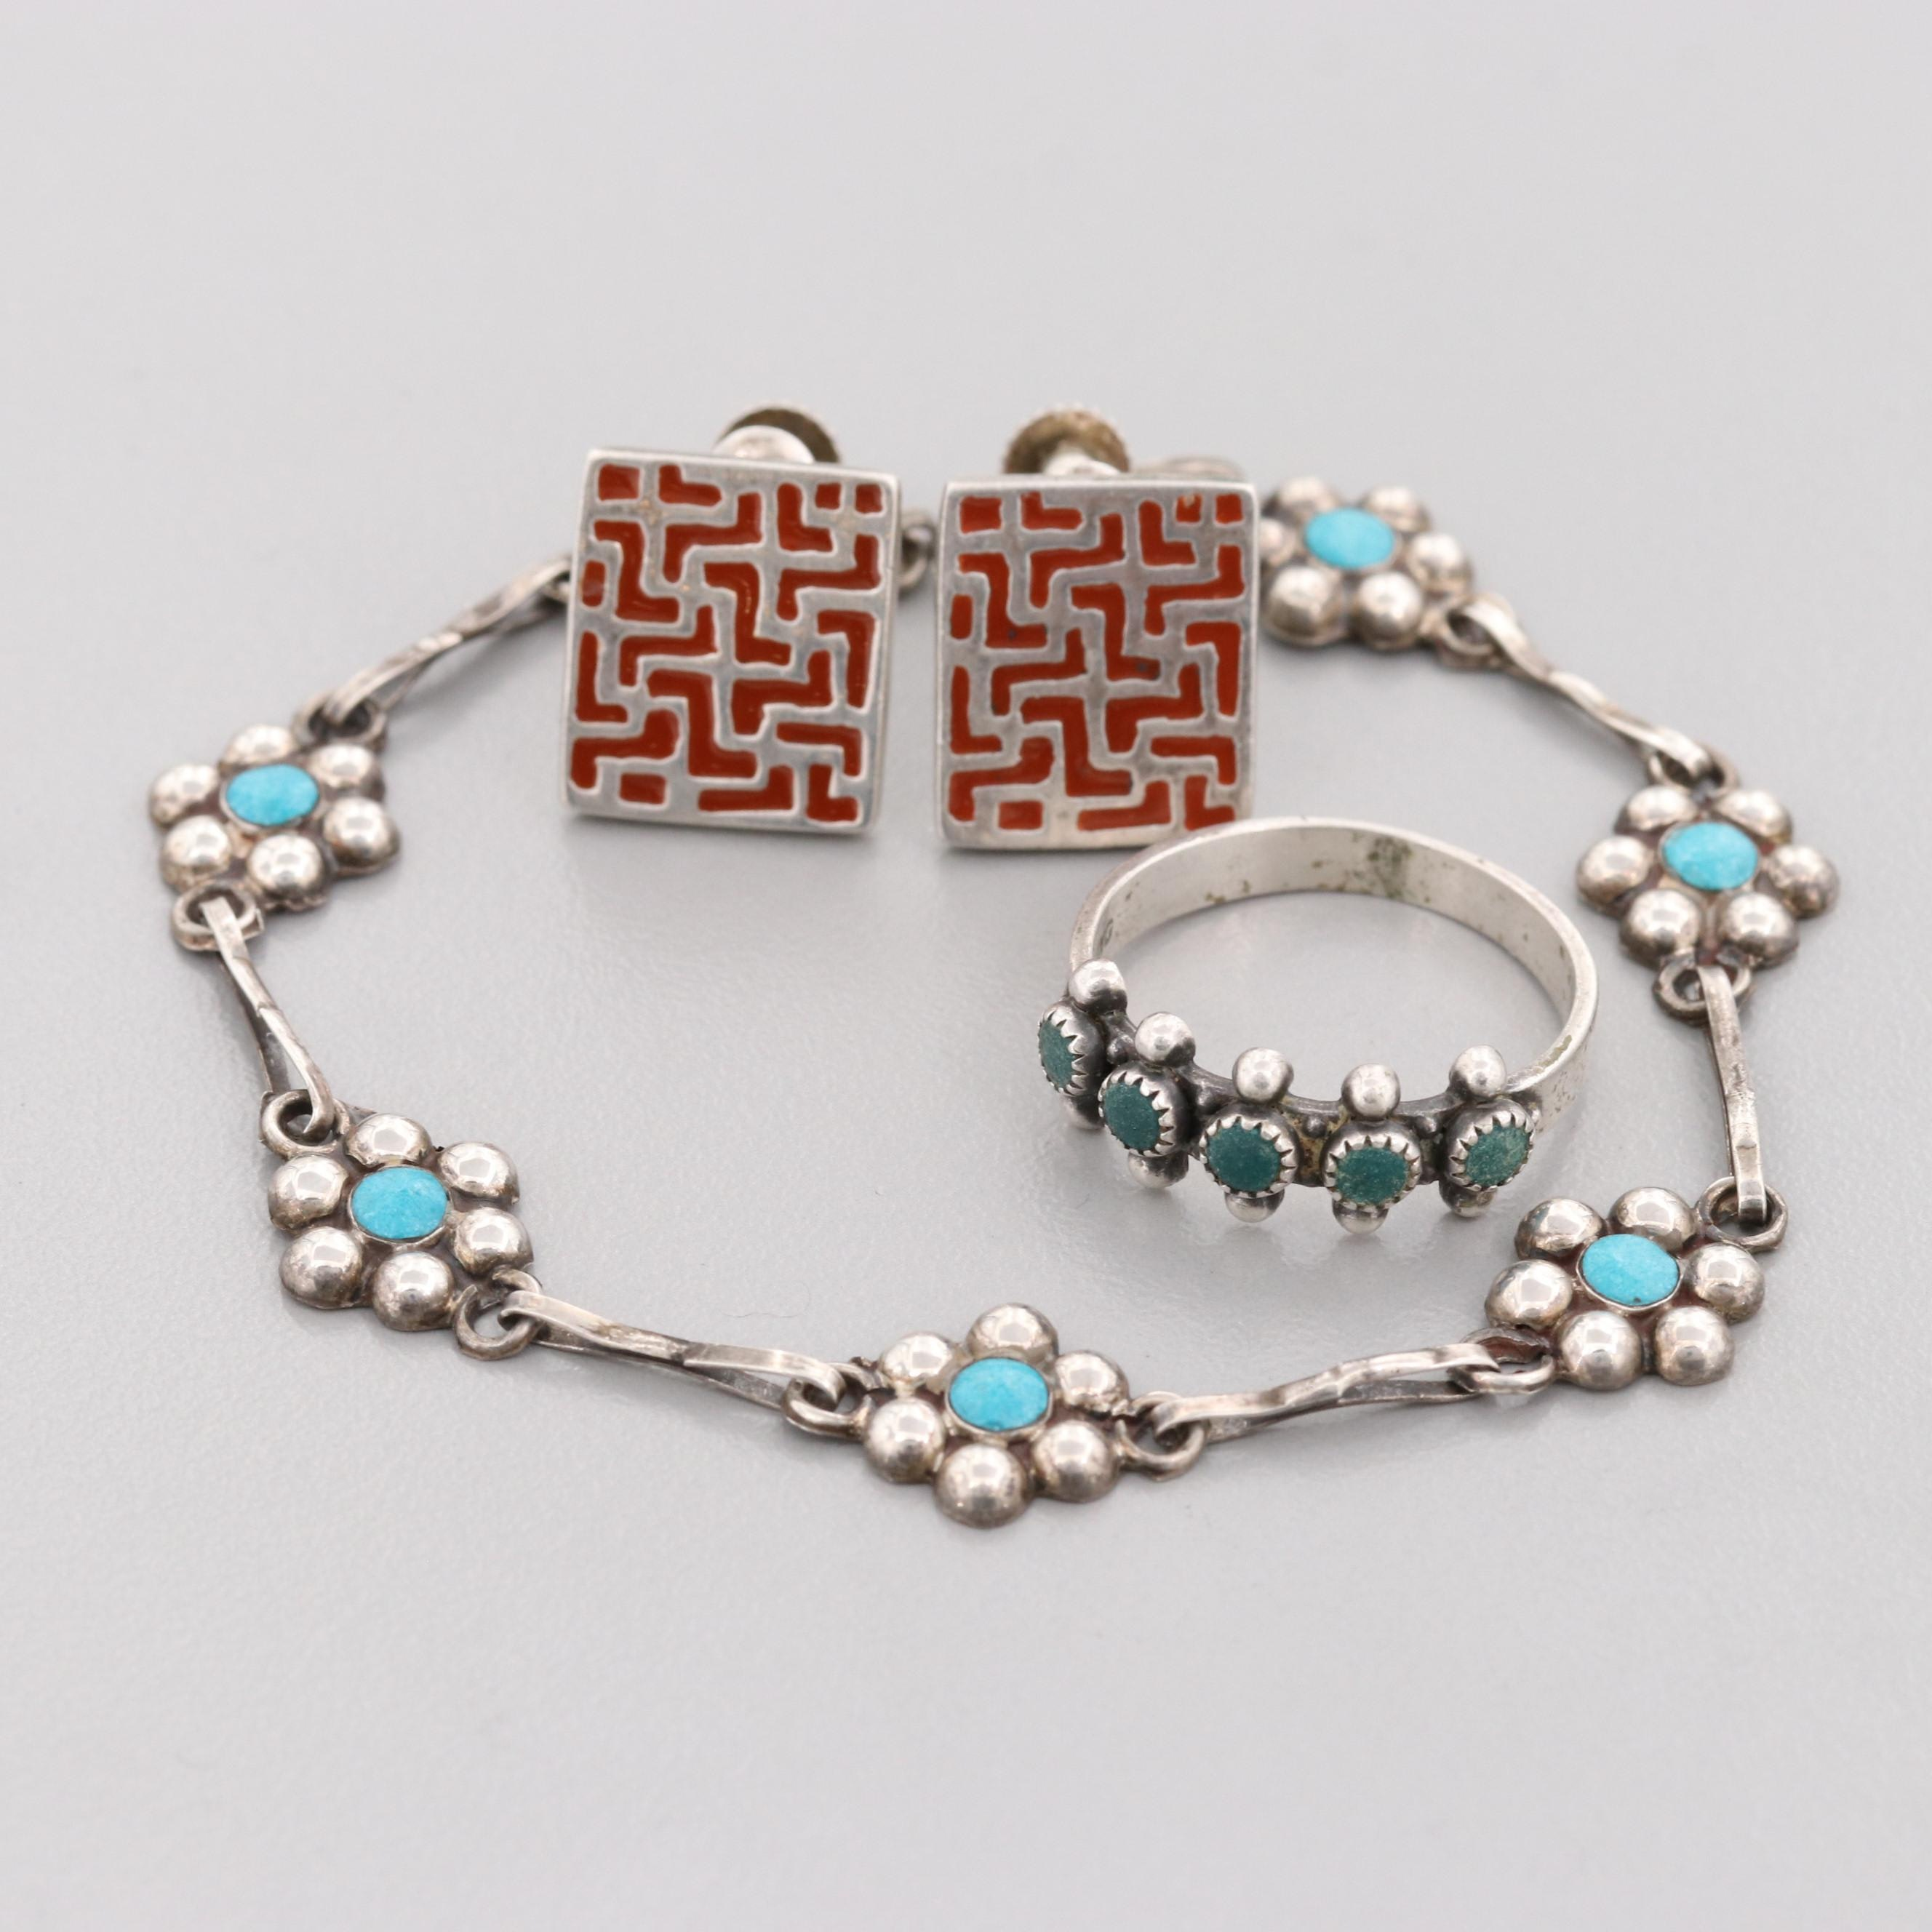 Vintage Mexican Sterling Reconstituted Turquoise and Enamel Jewelry